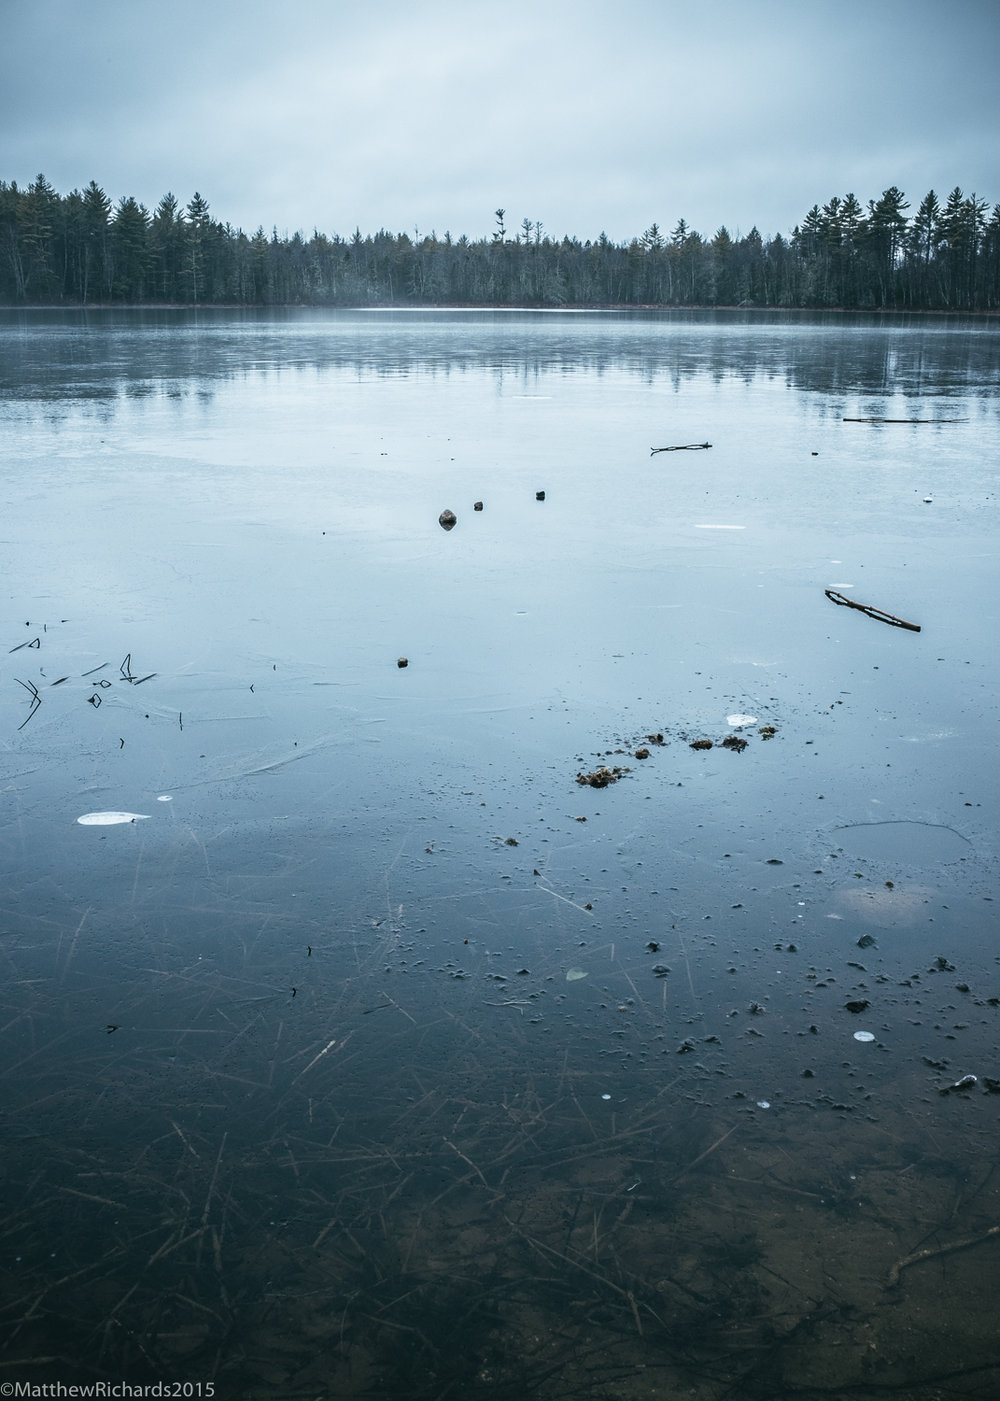 Pond in Sebago, Maine beginning to freeze